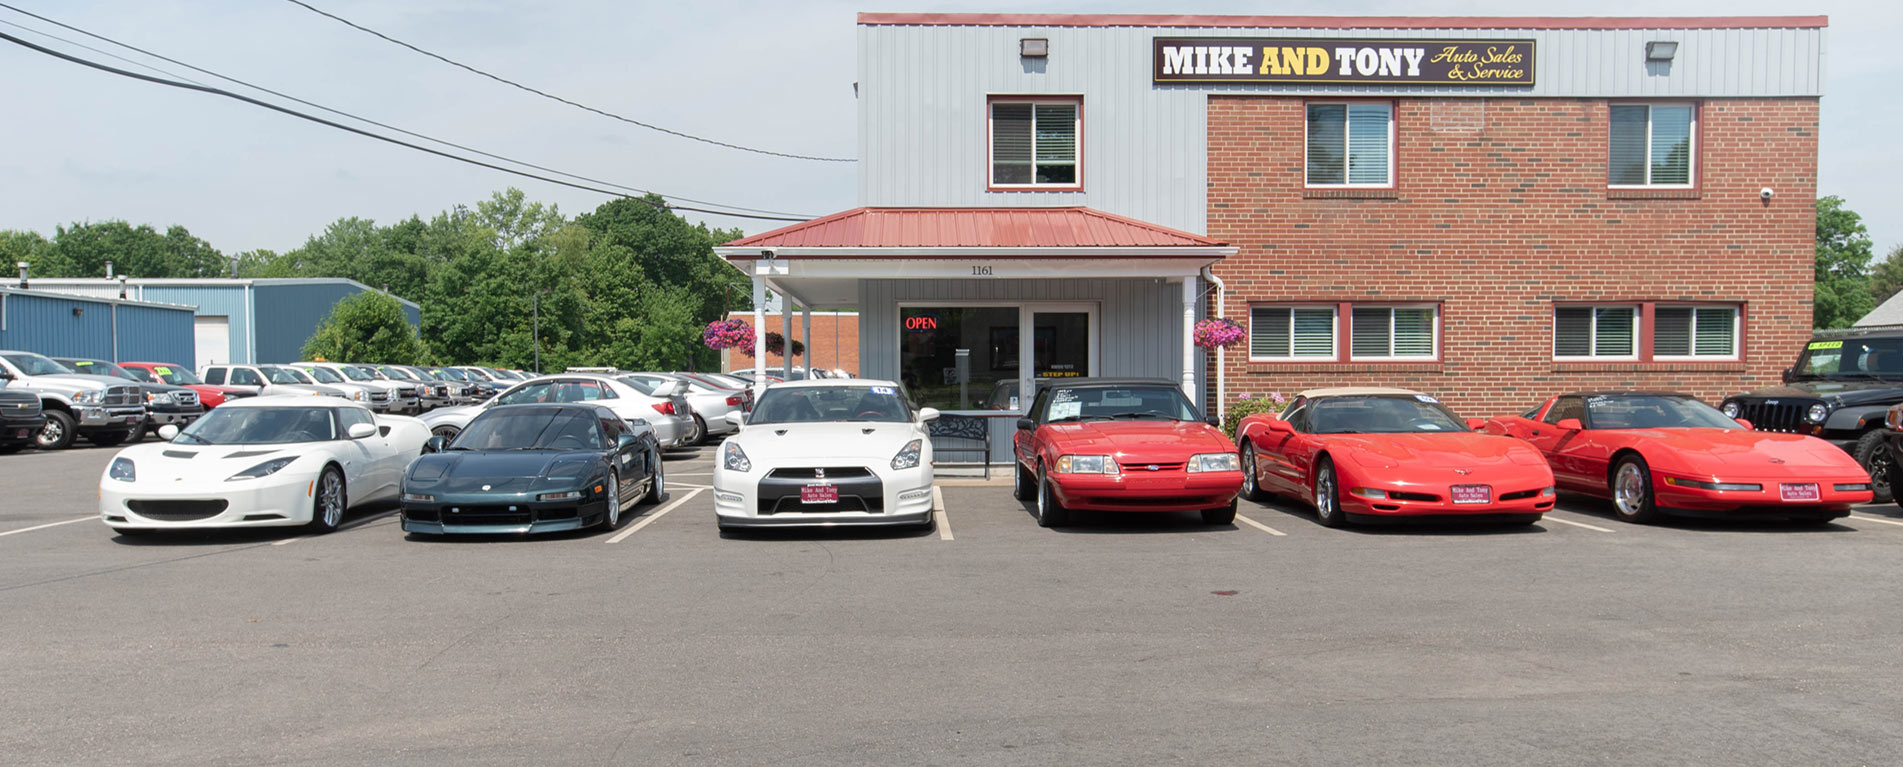 Used cars for sale in South Windsor | Mike And Tony Auto Sales, Inc. South Windsor CT